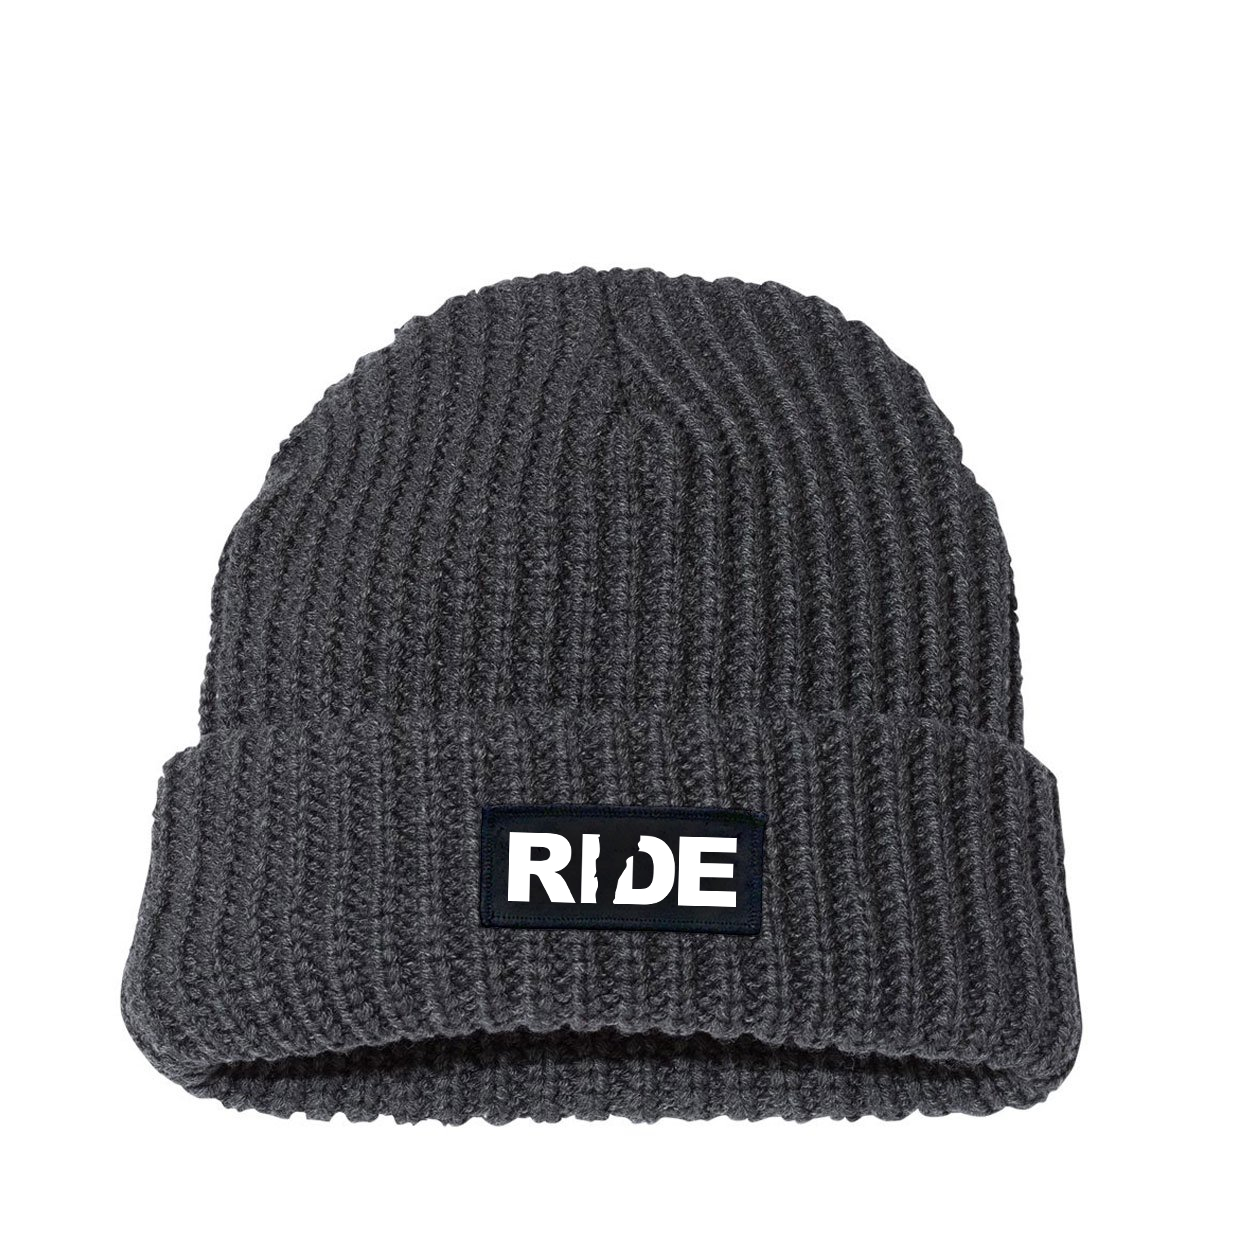 Ride Vermont Night Out Woven Patch Roll Up Jumbo Chunky Knit Beanie Charcoal (White Logo)